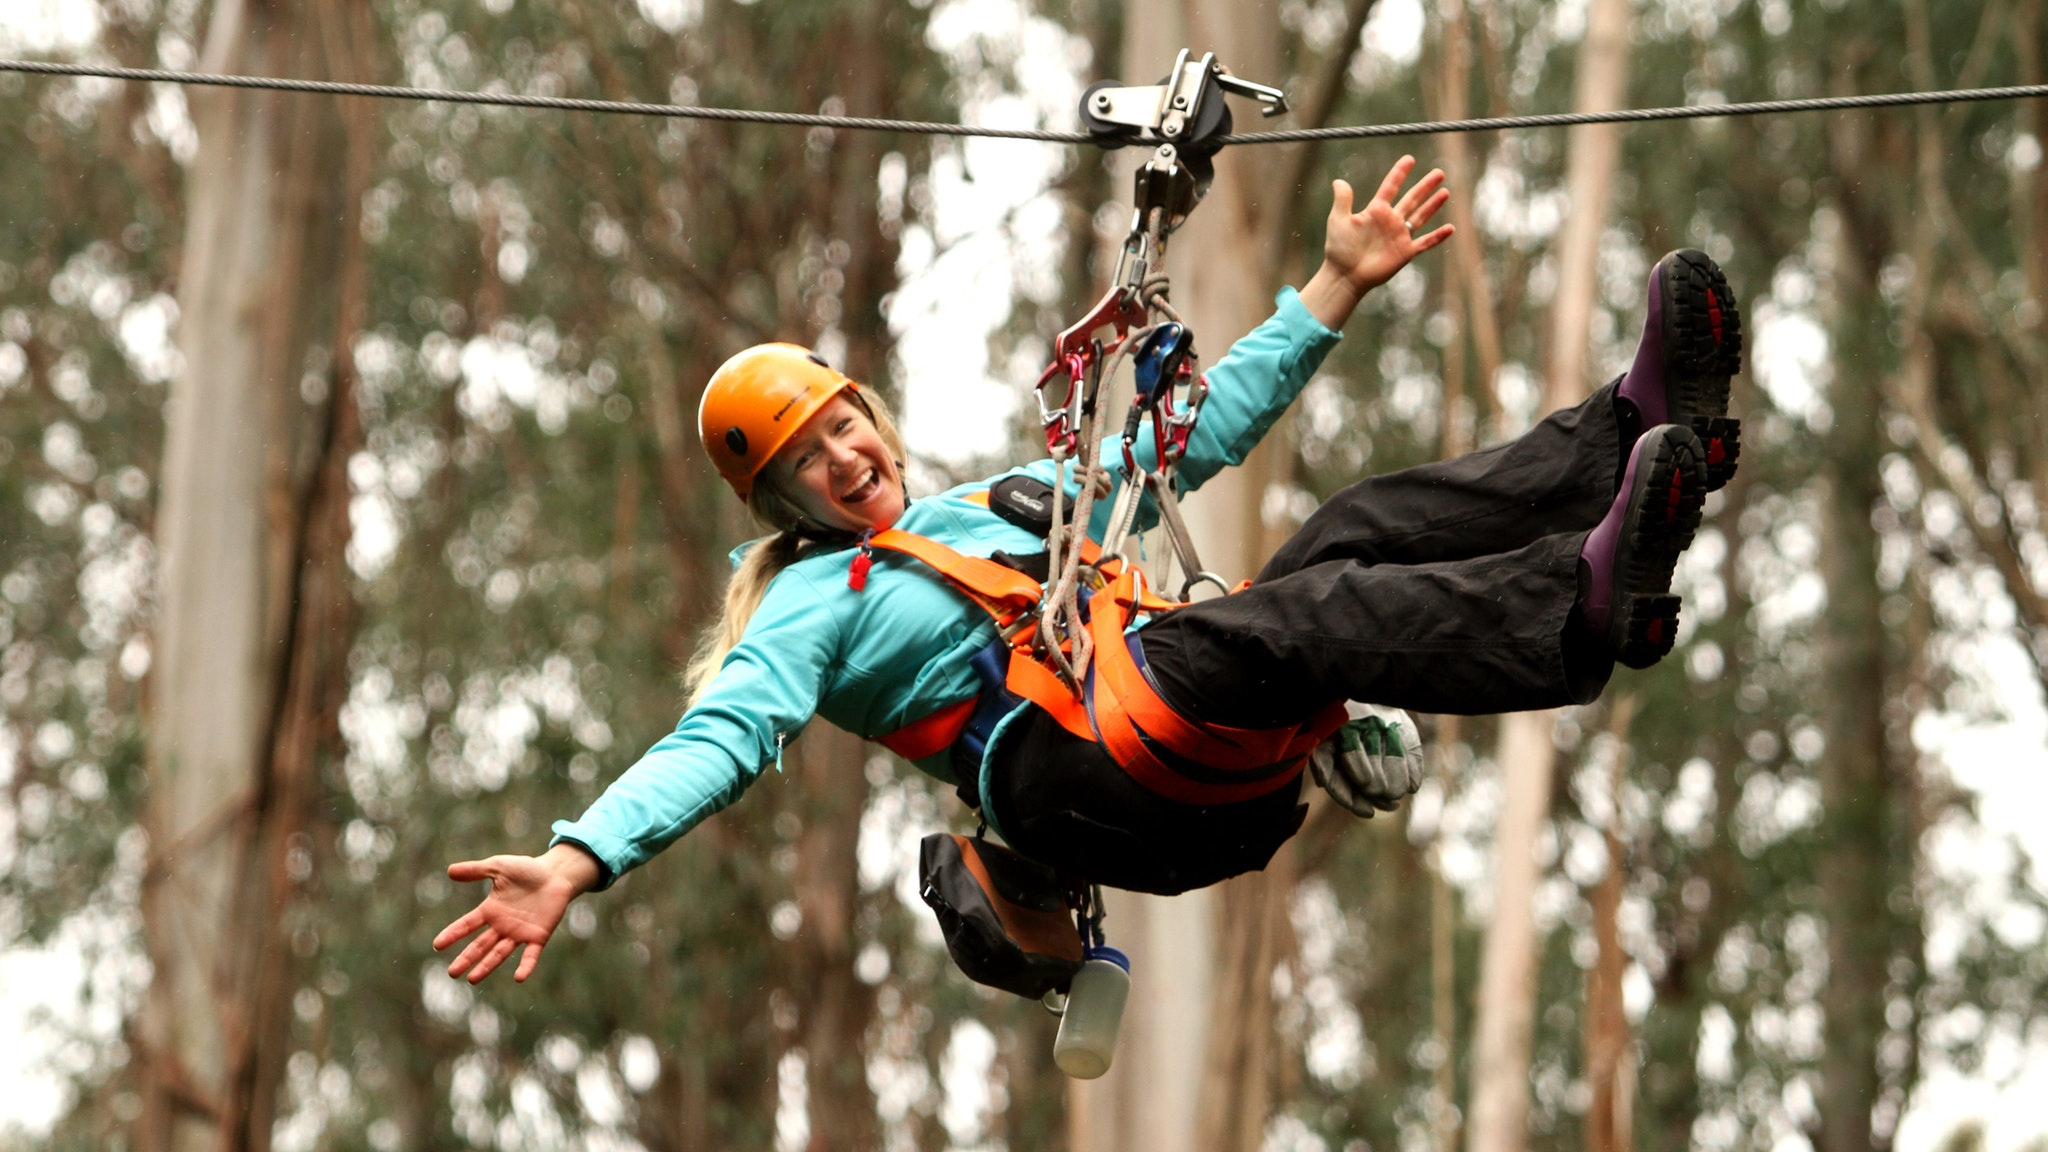 Zipping throught the forest